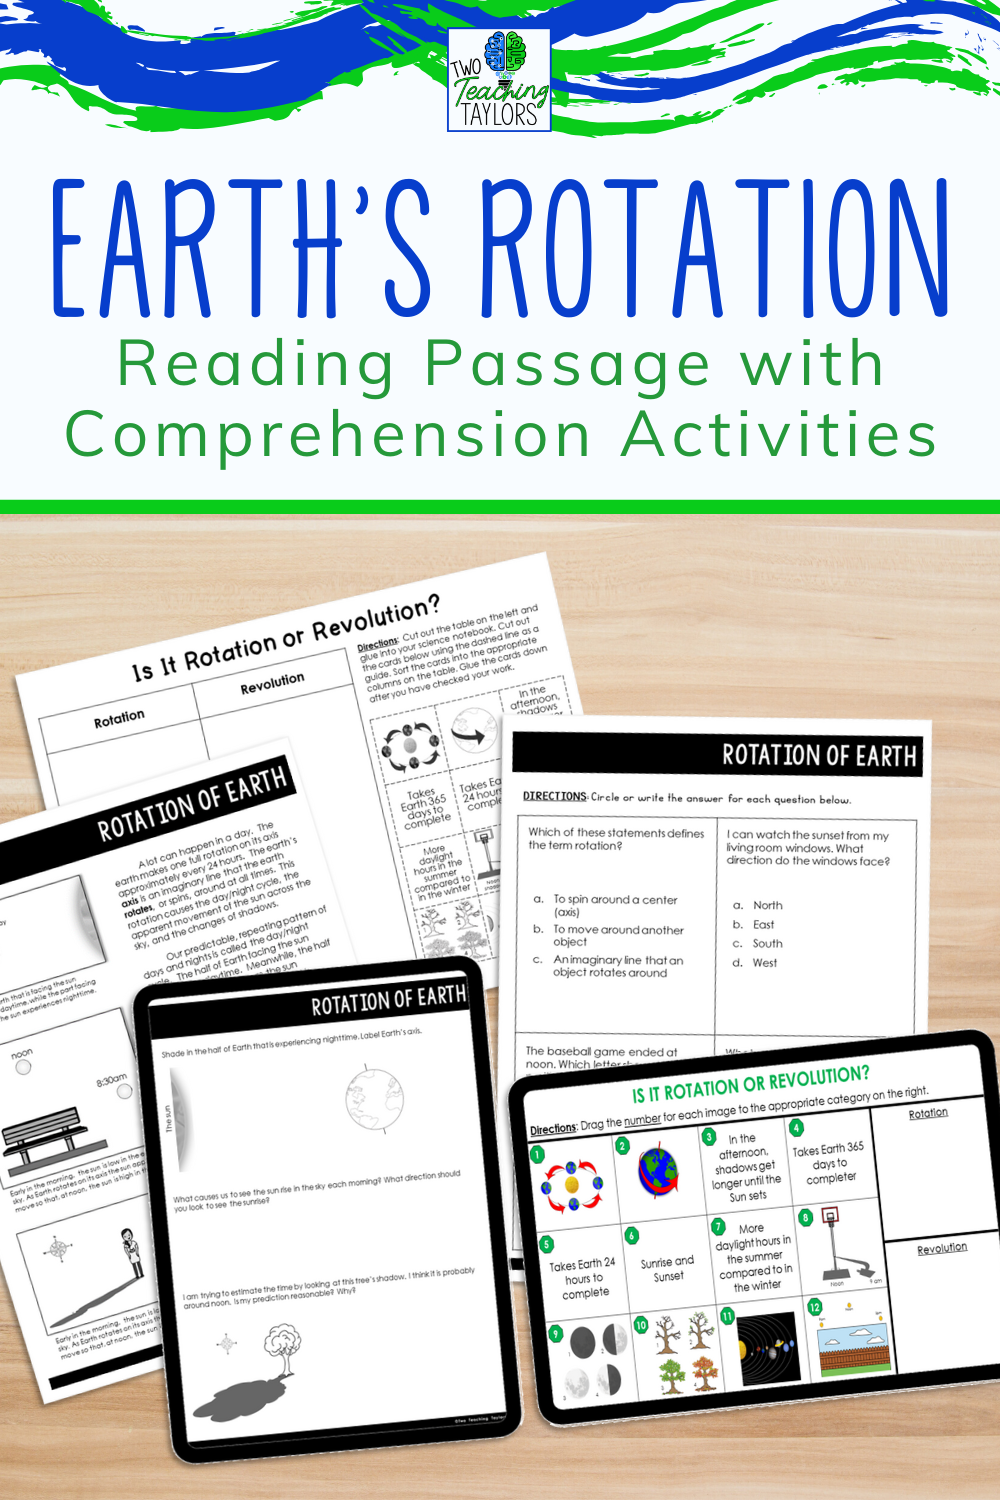 Predownload: Rotation Of Earth Reading Passage With Comprehension Activities Upper Elementary Science Reading Passages Elementary Science Classroom [ 1500 x 1000 Pixel ]